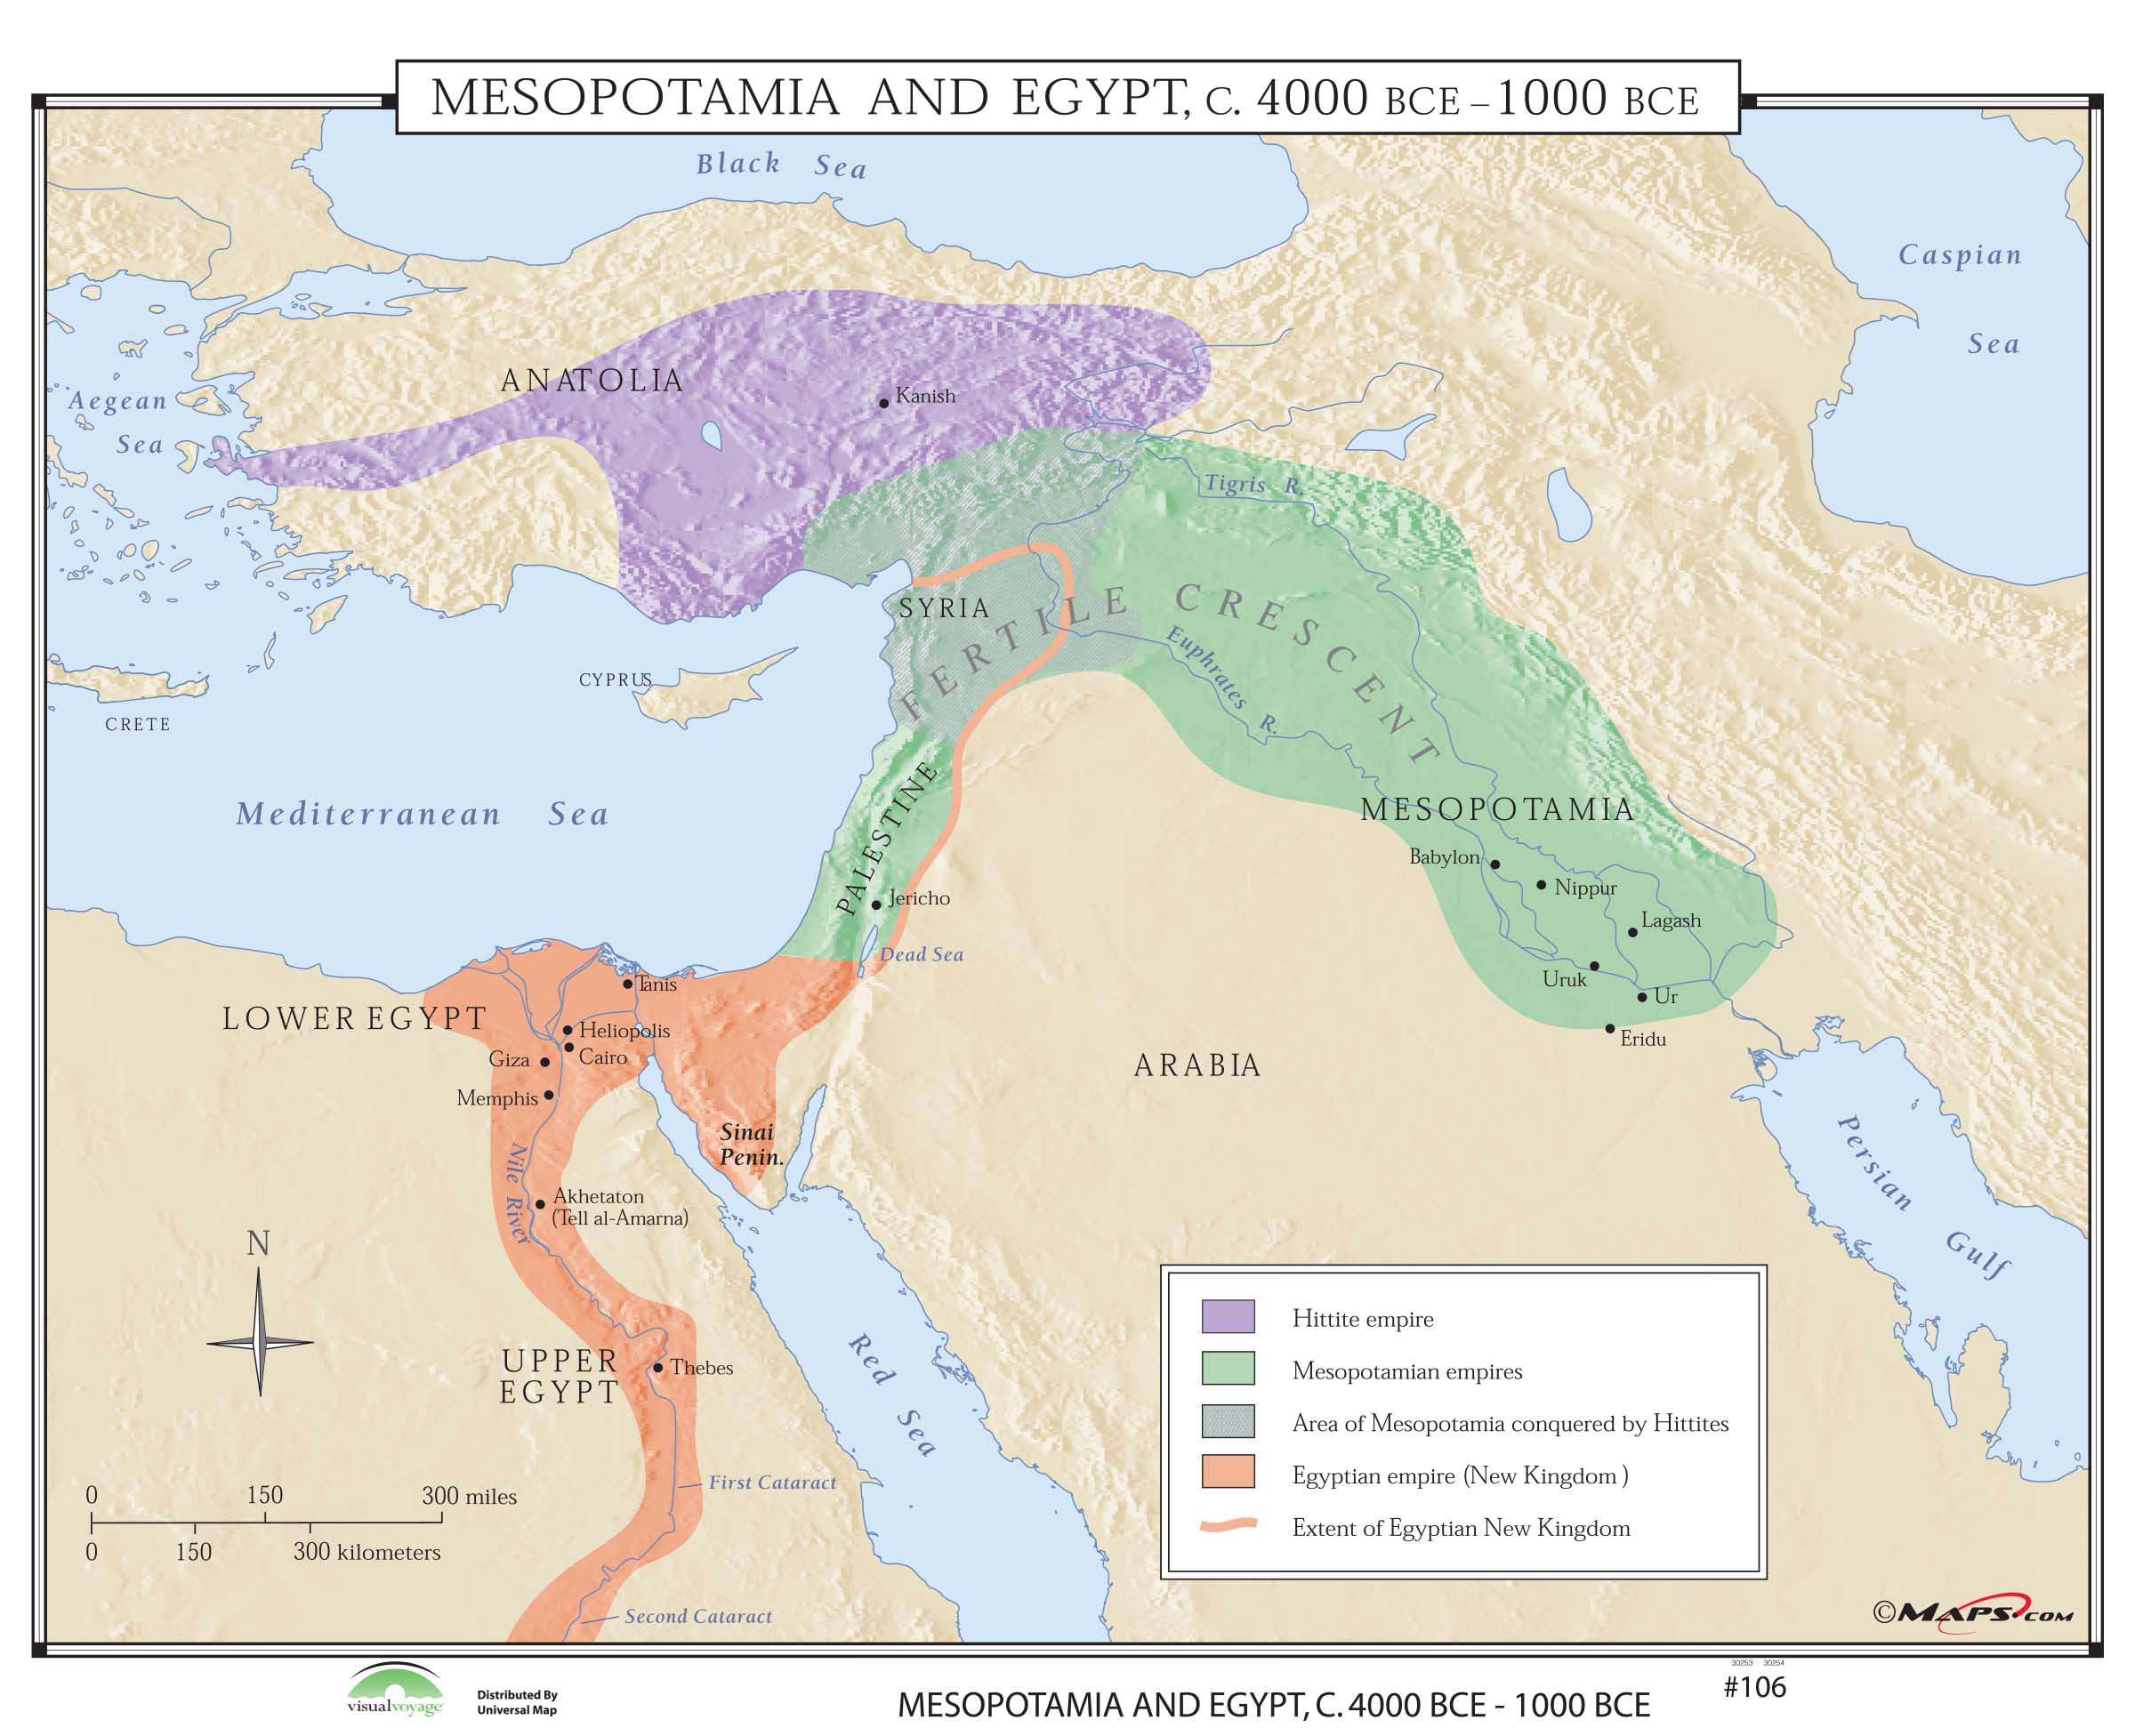 106 mesopotamia egypt 4000 1000 bce kappa map group 106 mesopotamia egypt 4000 1000 bce gumiabroncs Choice Image